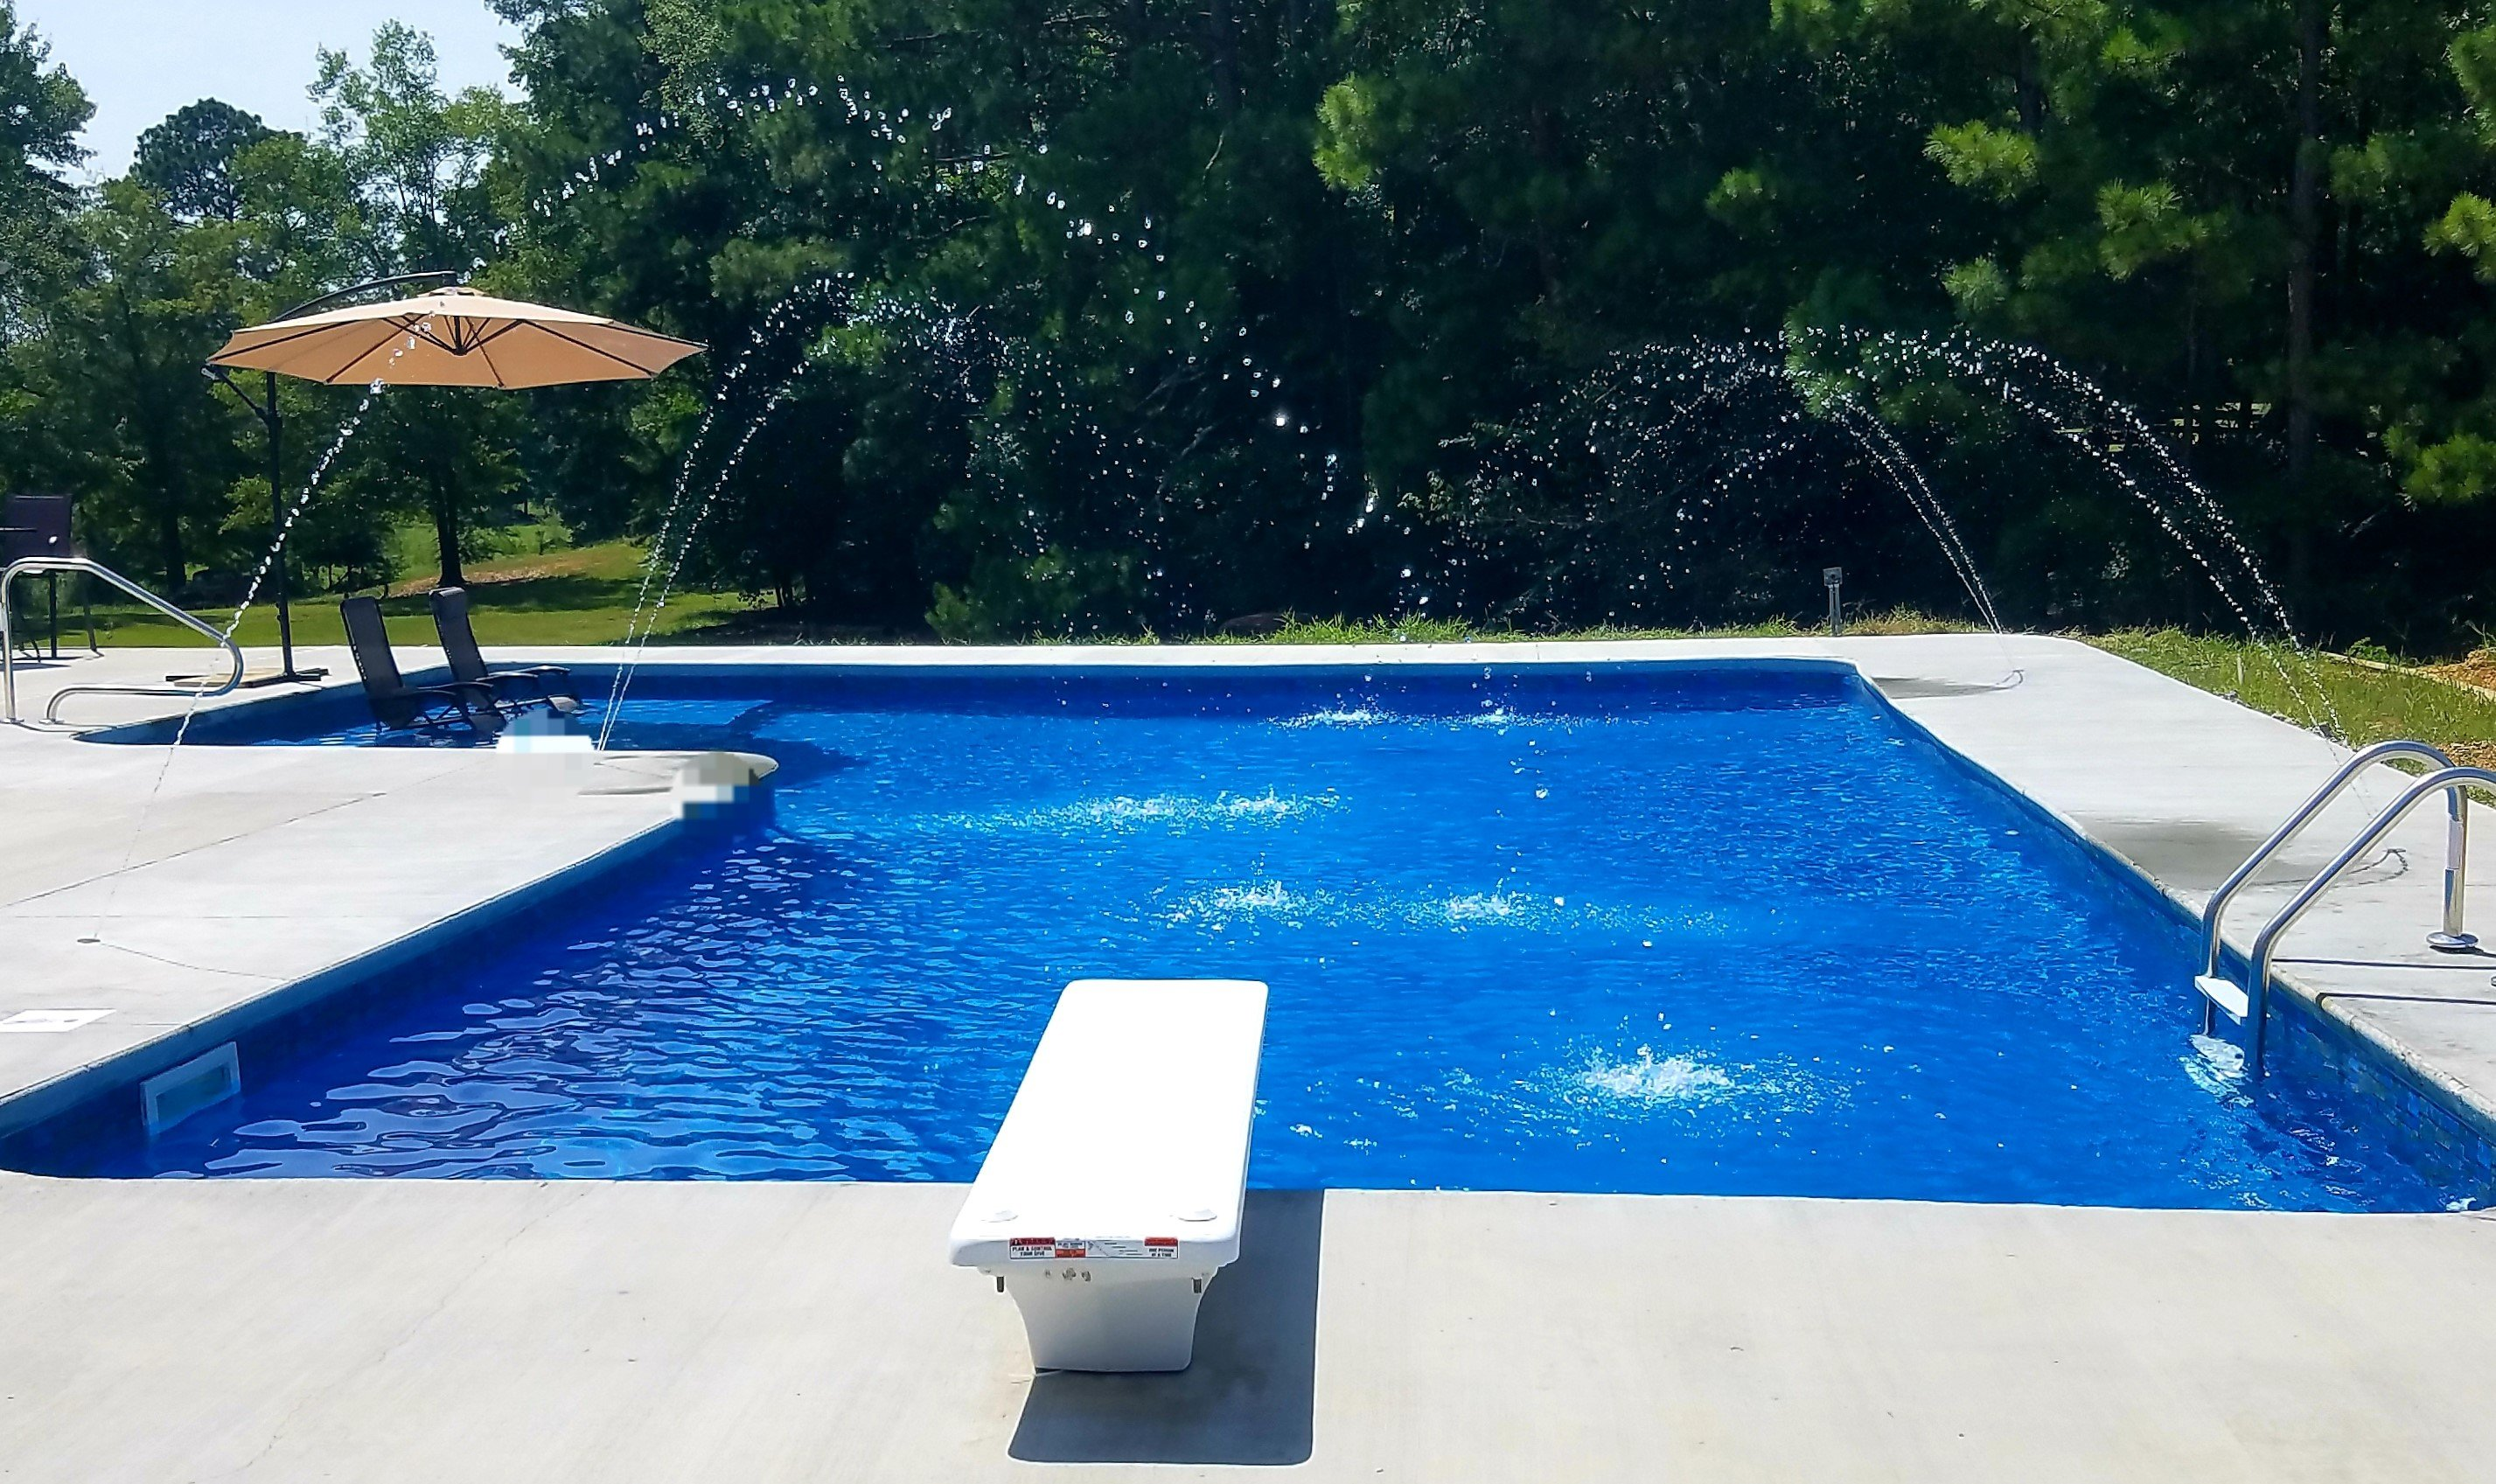 How To Safely Design A Diving Board Pool